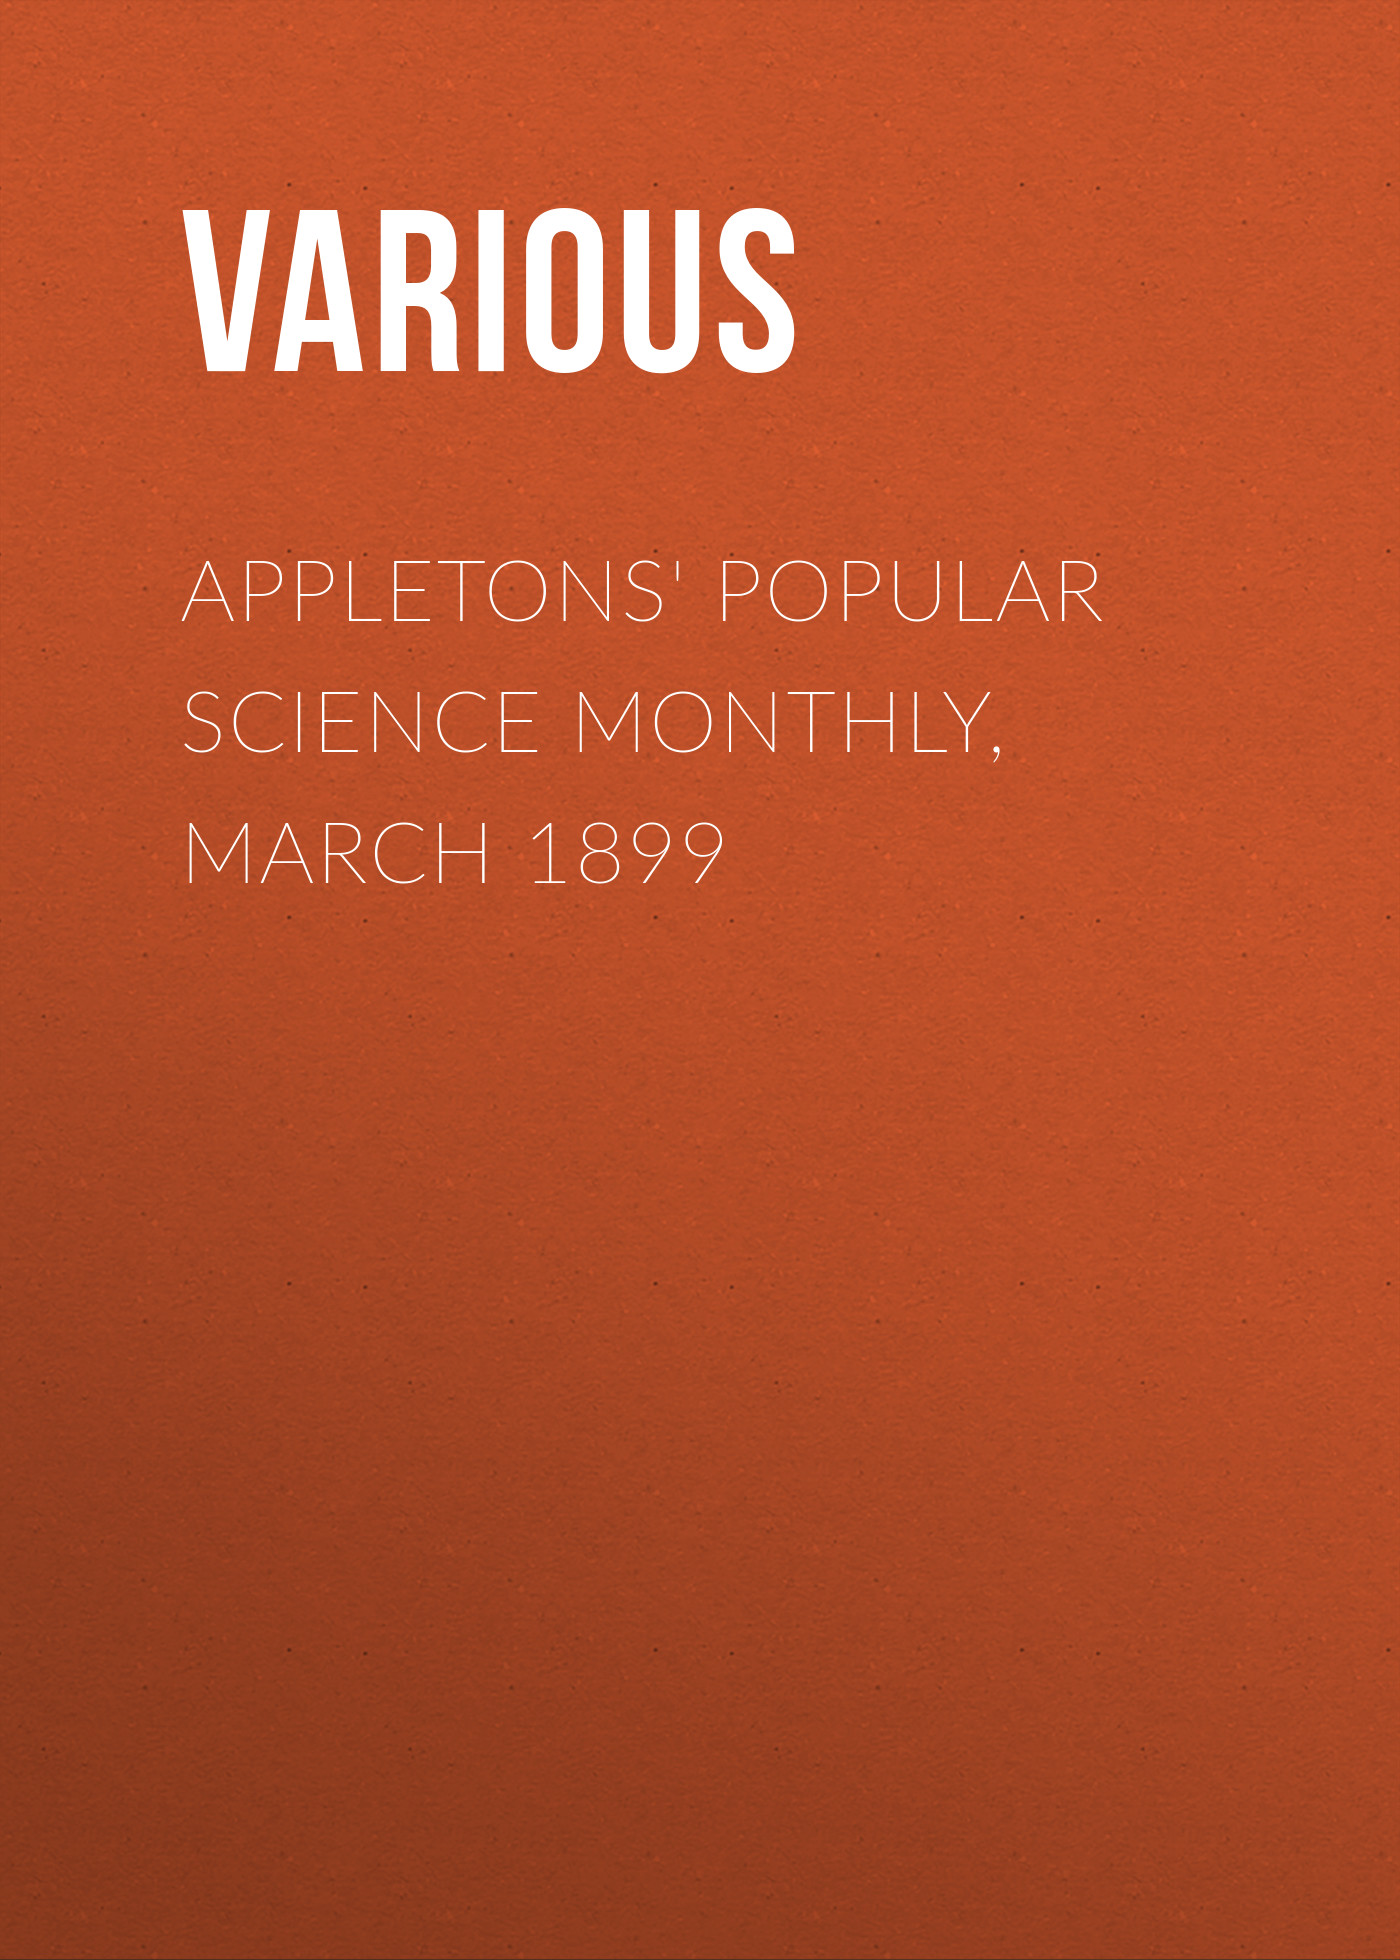 Various Appletons' Popular Science Monthly, March 1899 инфракрасный обогреватель elekon power tt 30ps